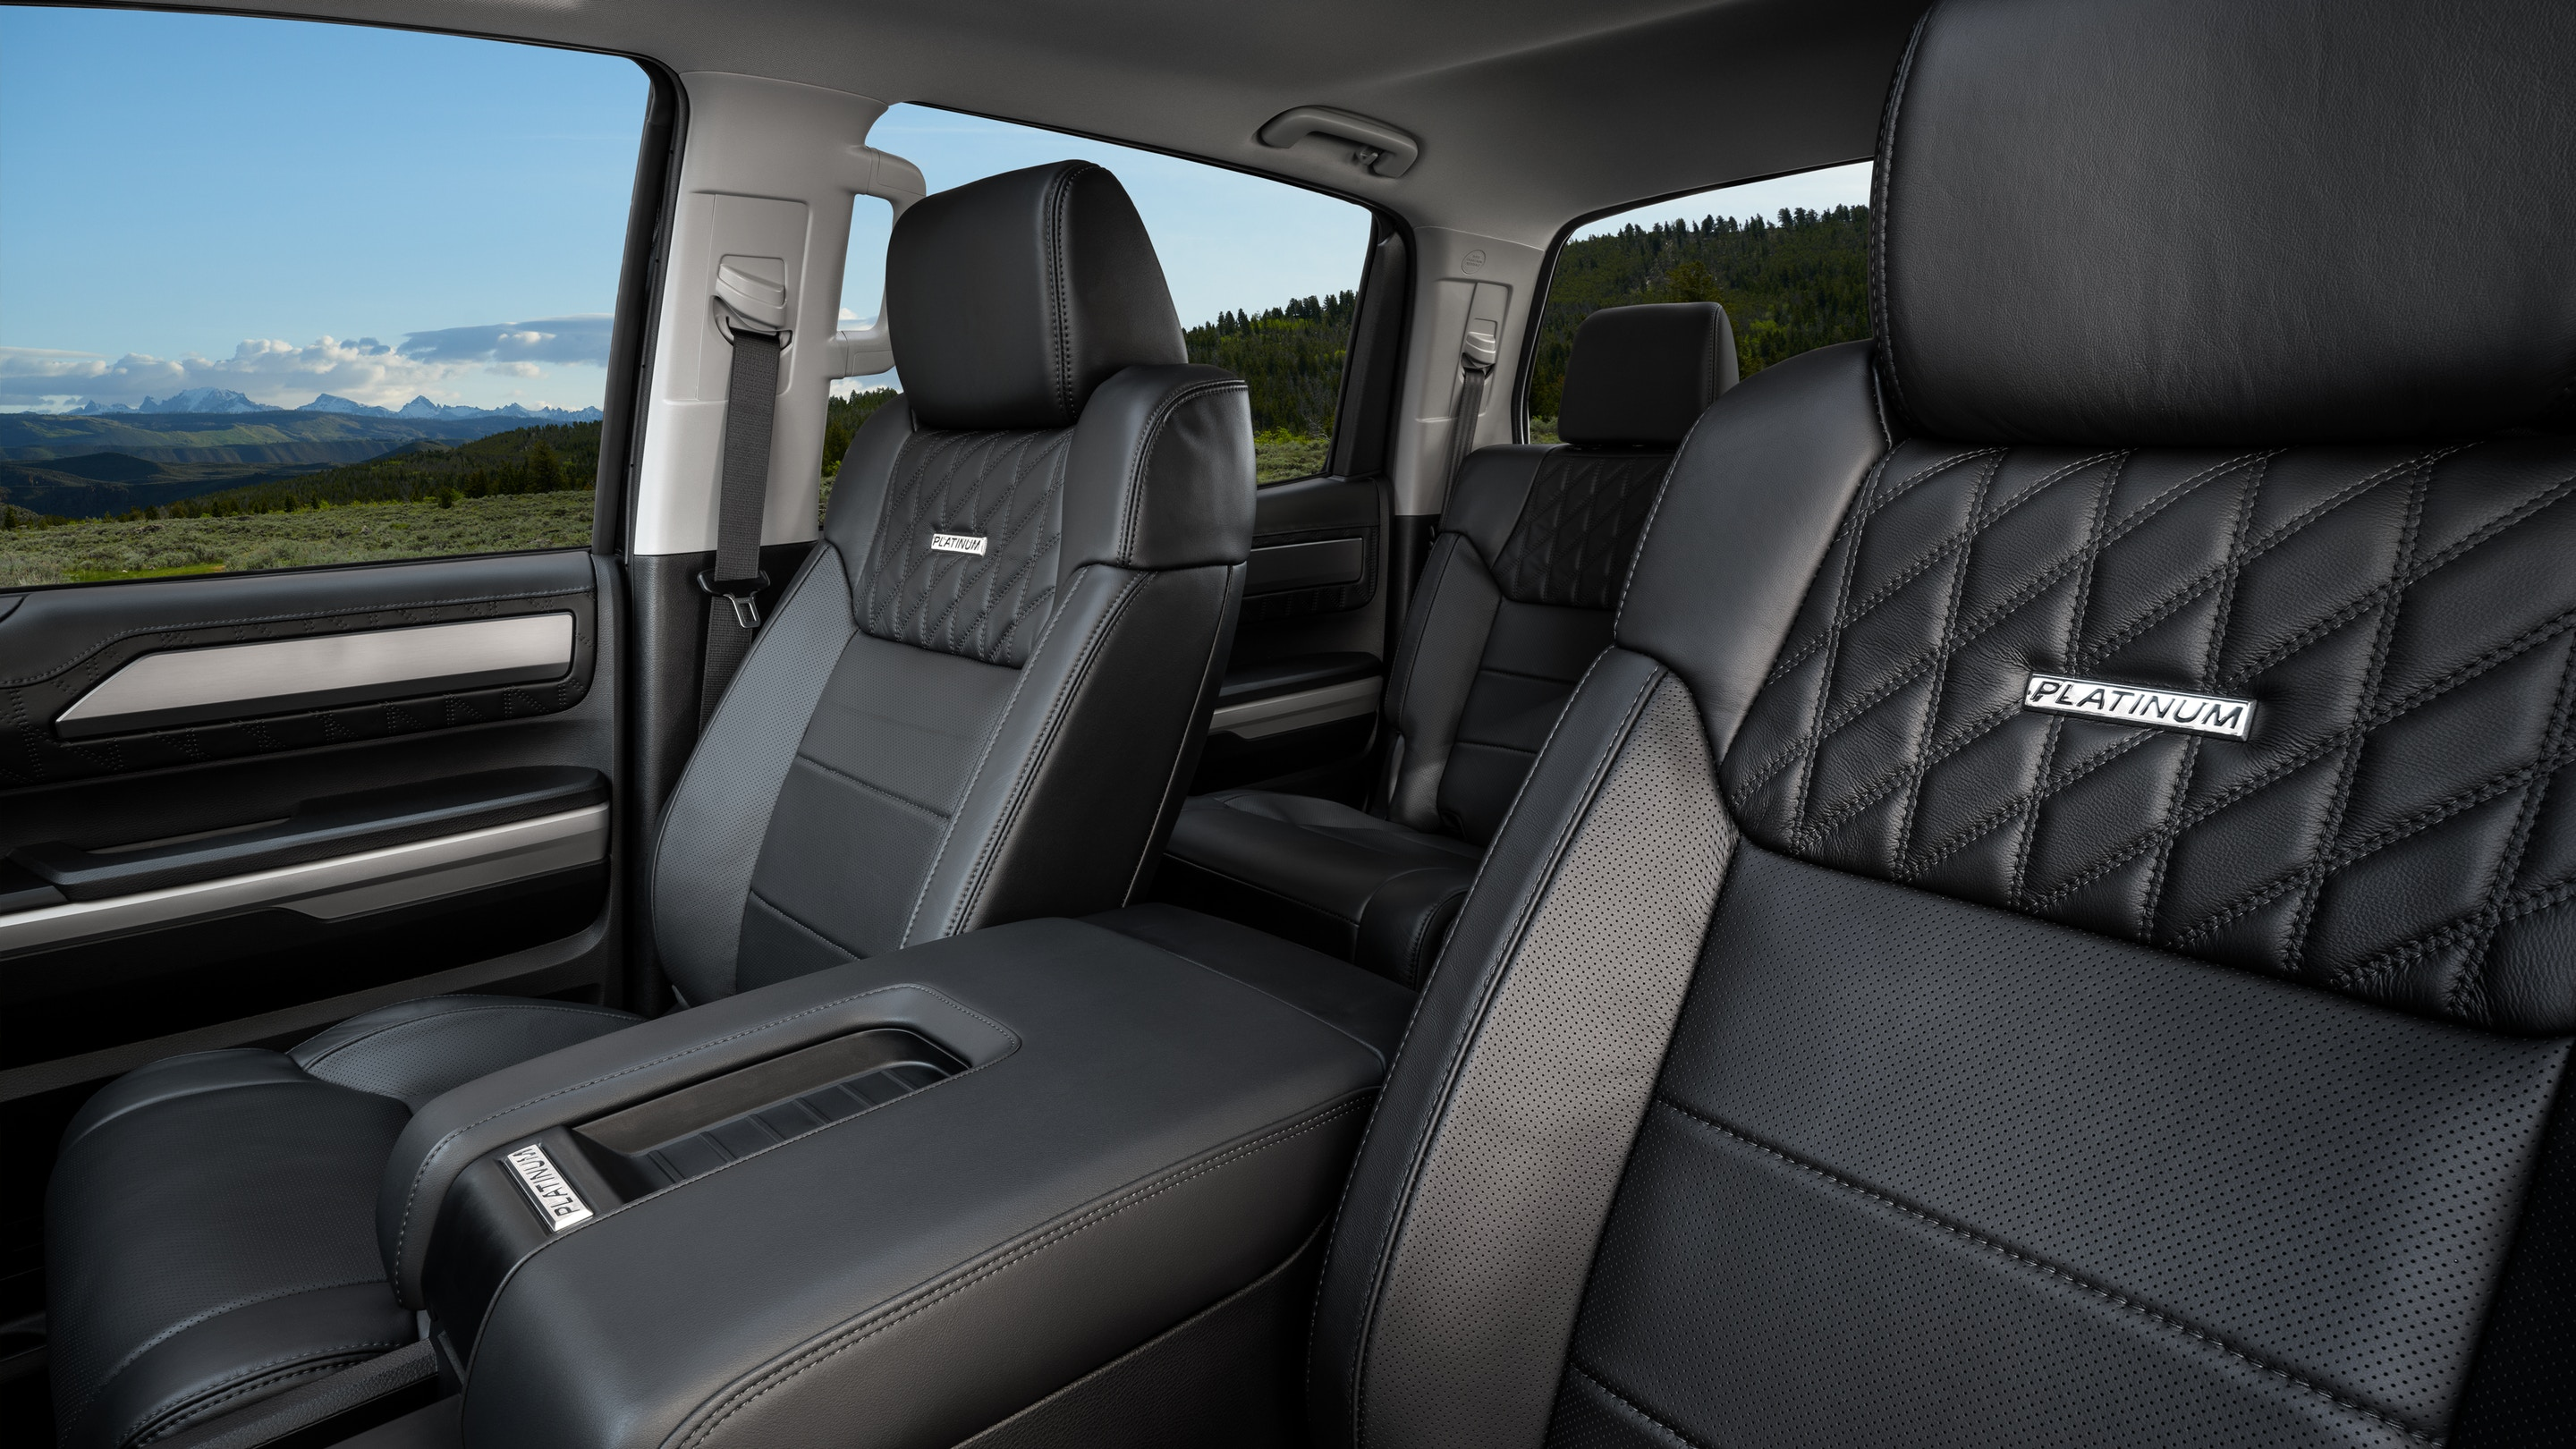 Enjoy Every Drive in the 2020 Toyota Tundra in Full Comfort!